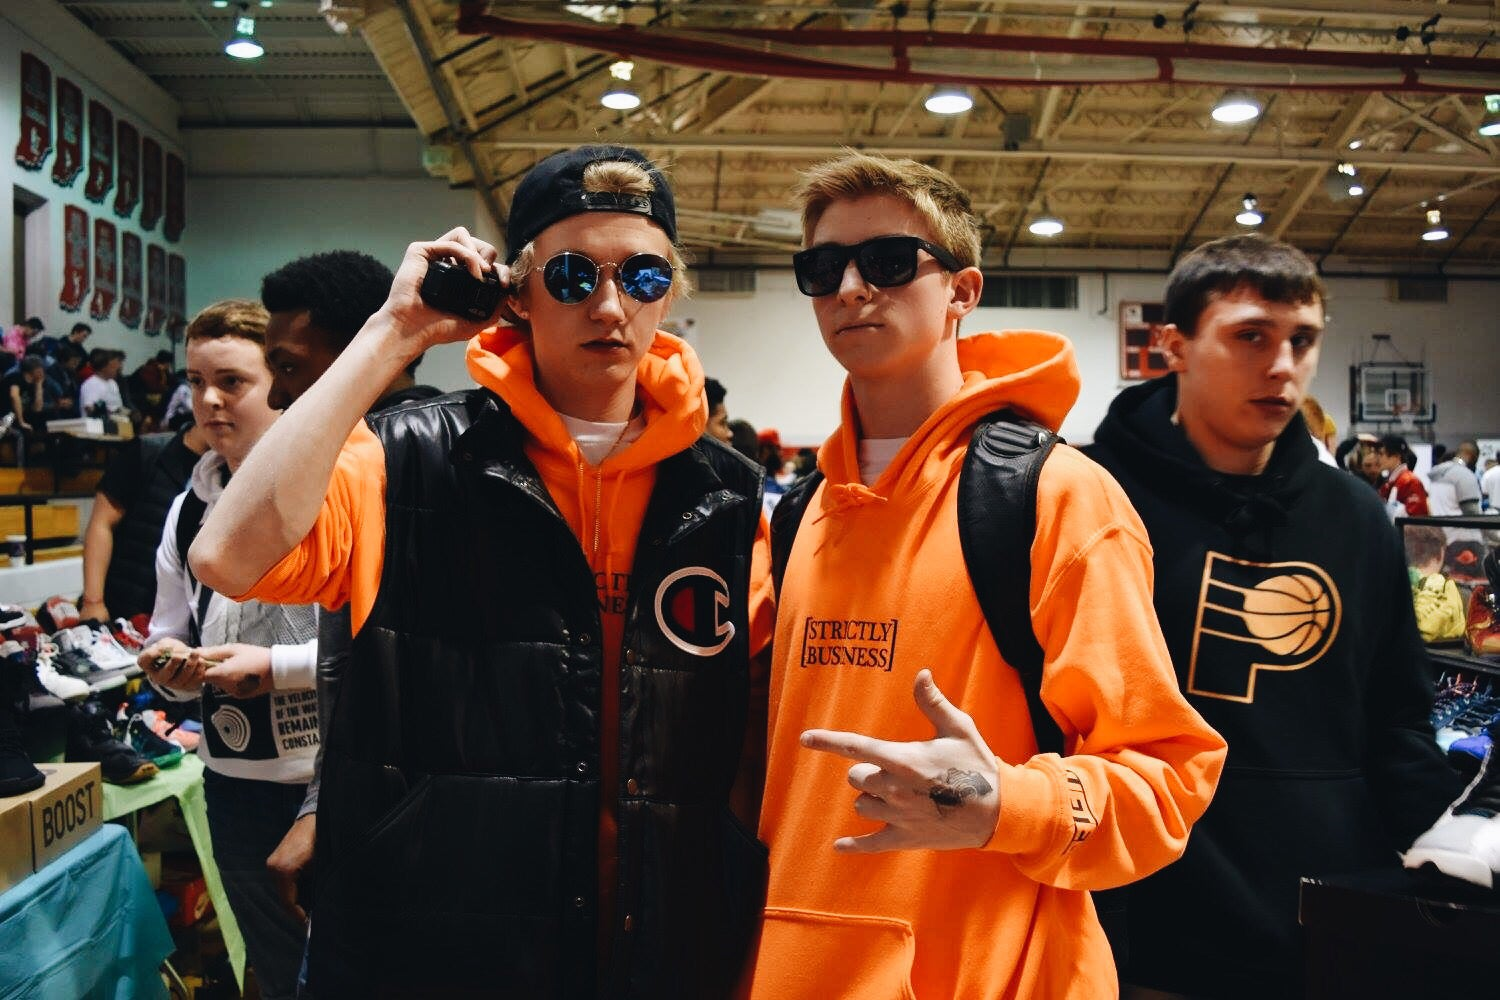 Image of Strictly Business Hoodies